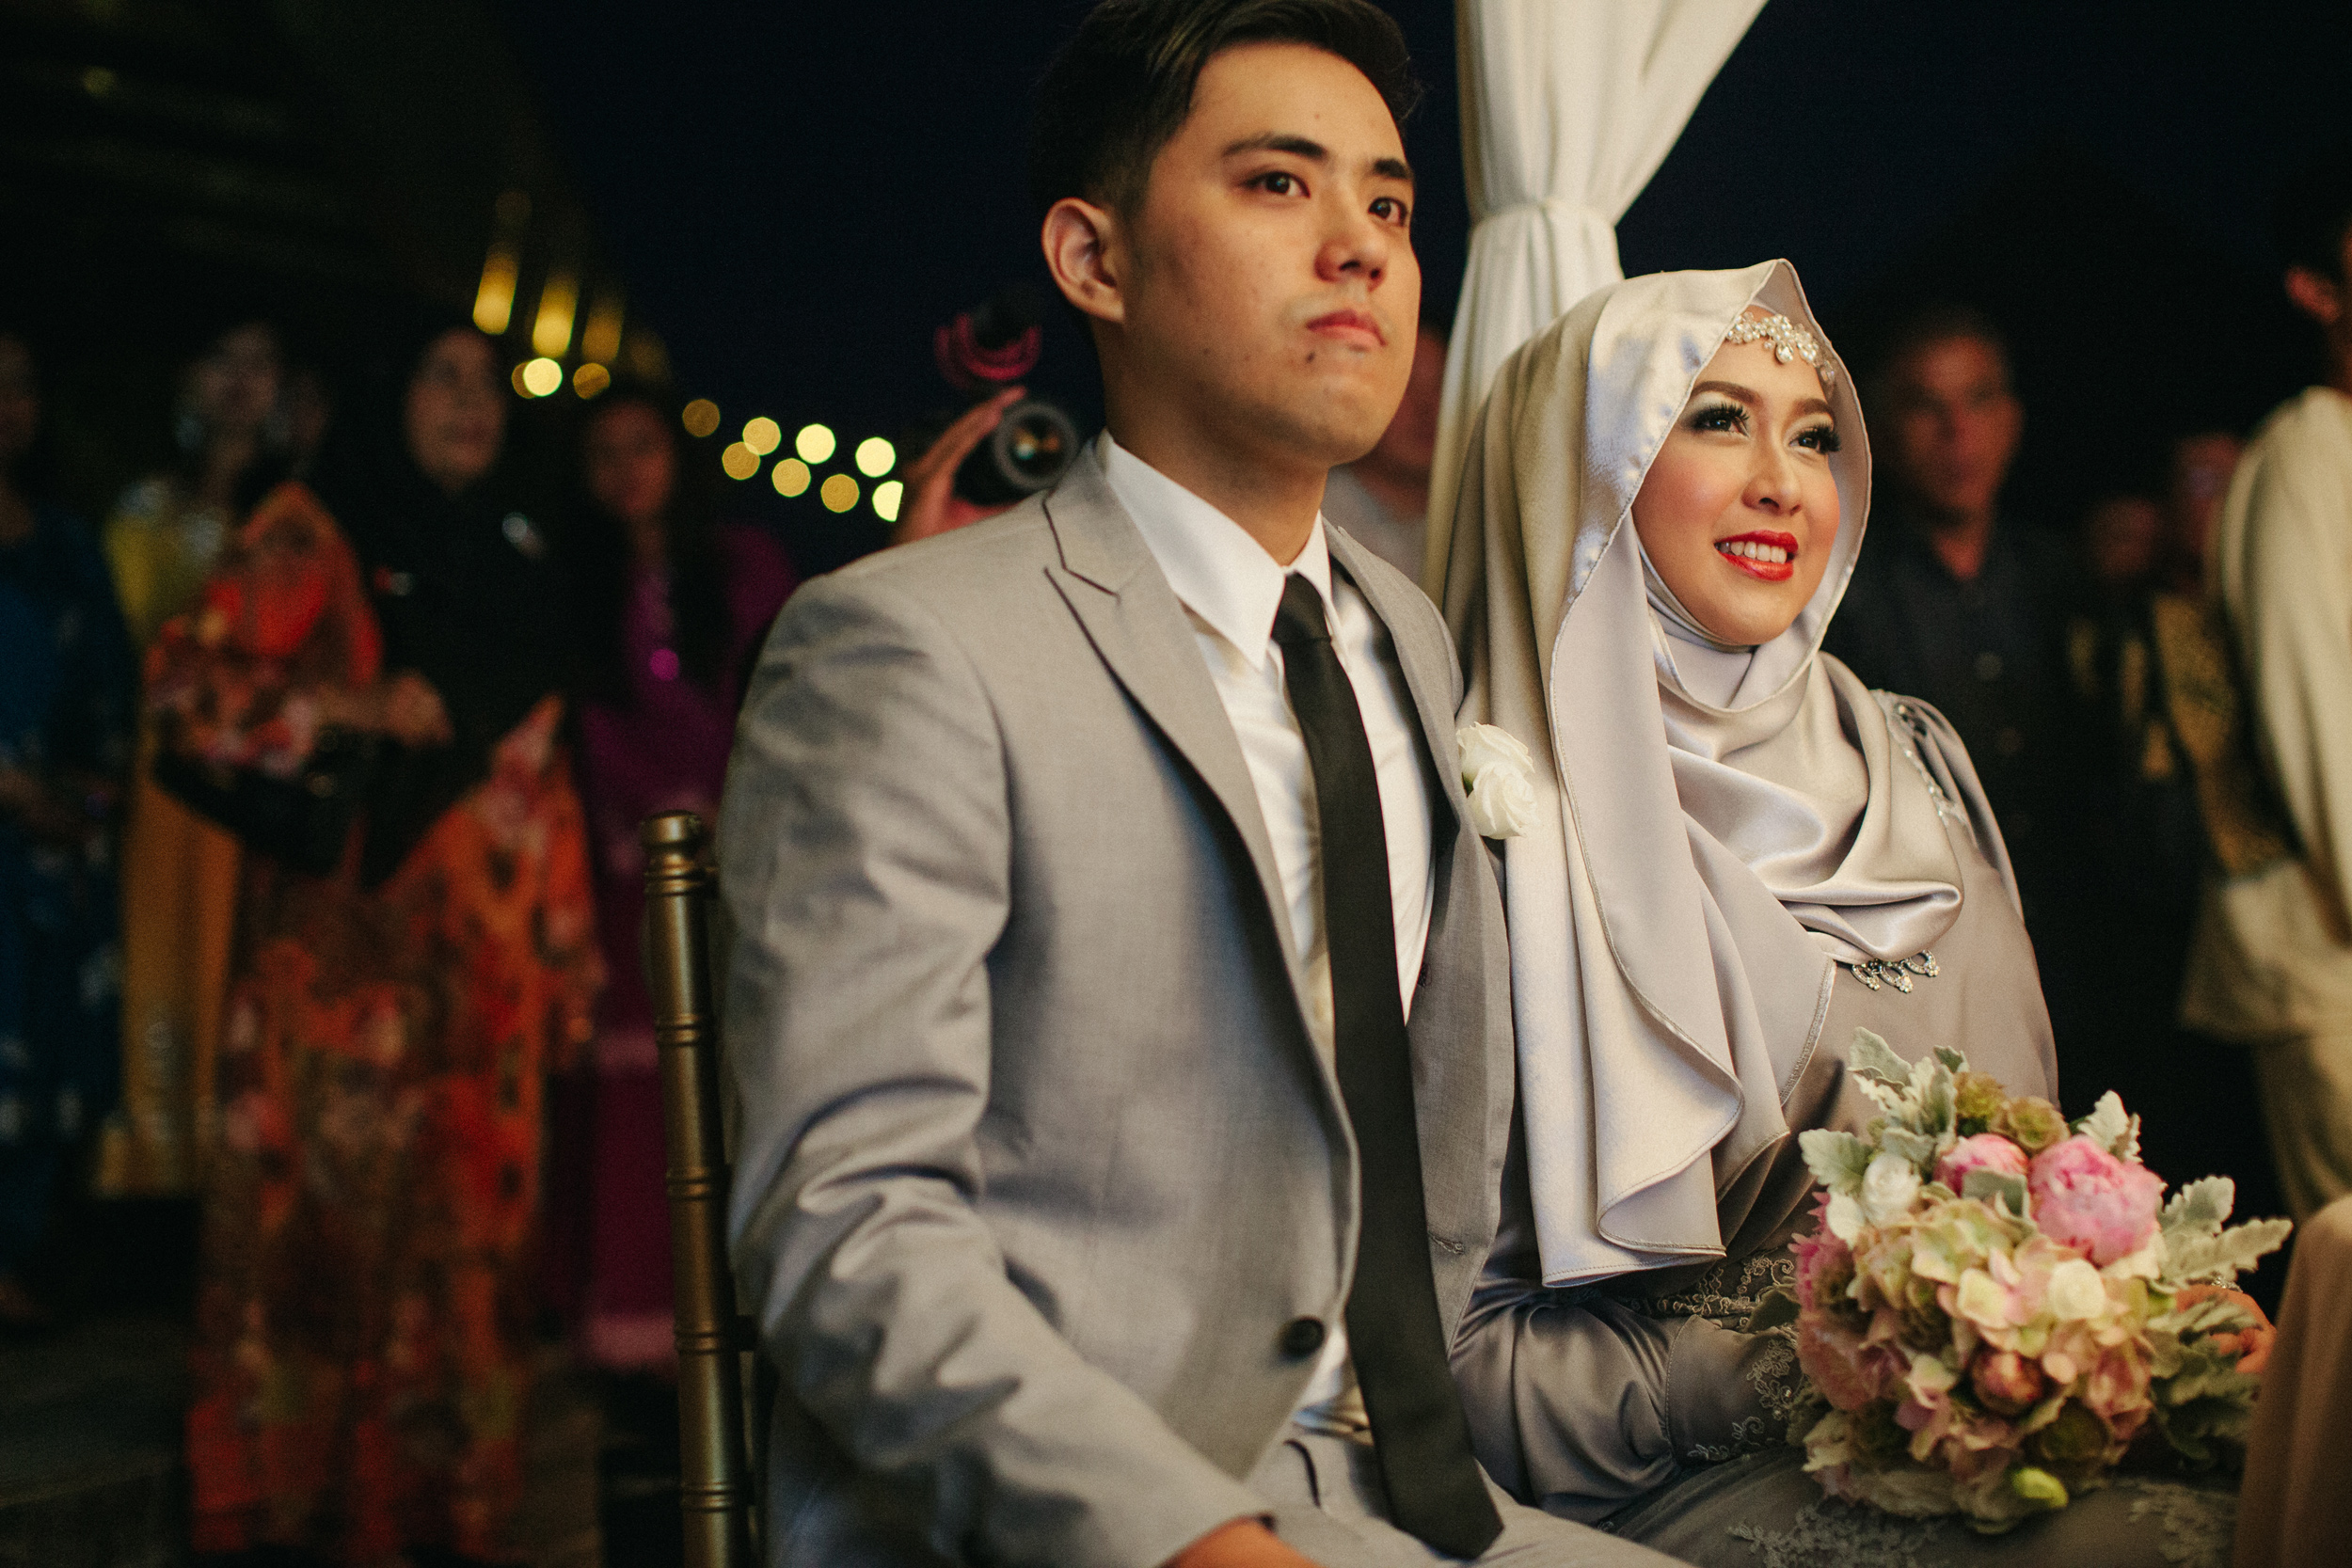 singapore-wedding-photographer-wemadethese-aisyah-helmi-71.jpg